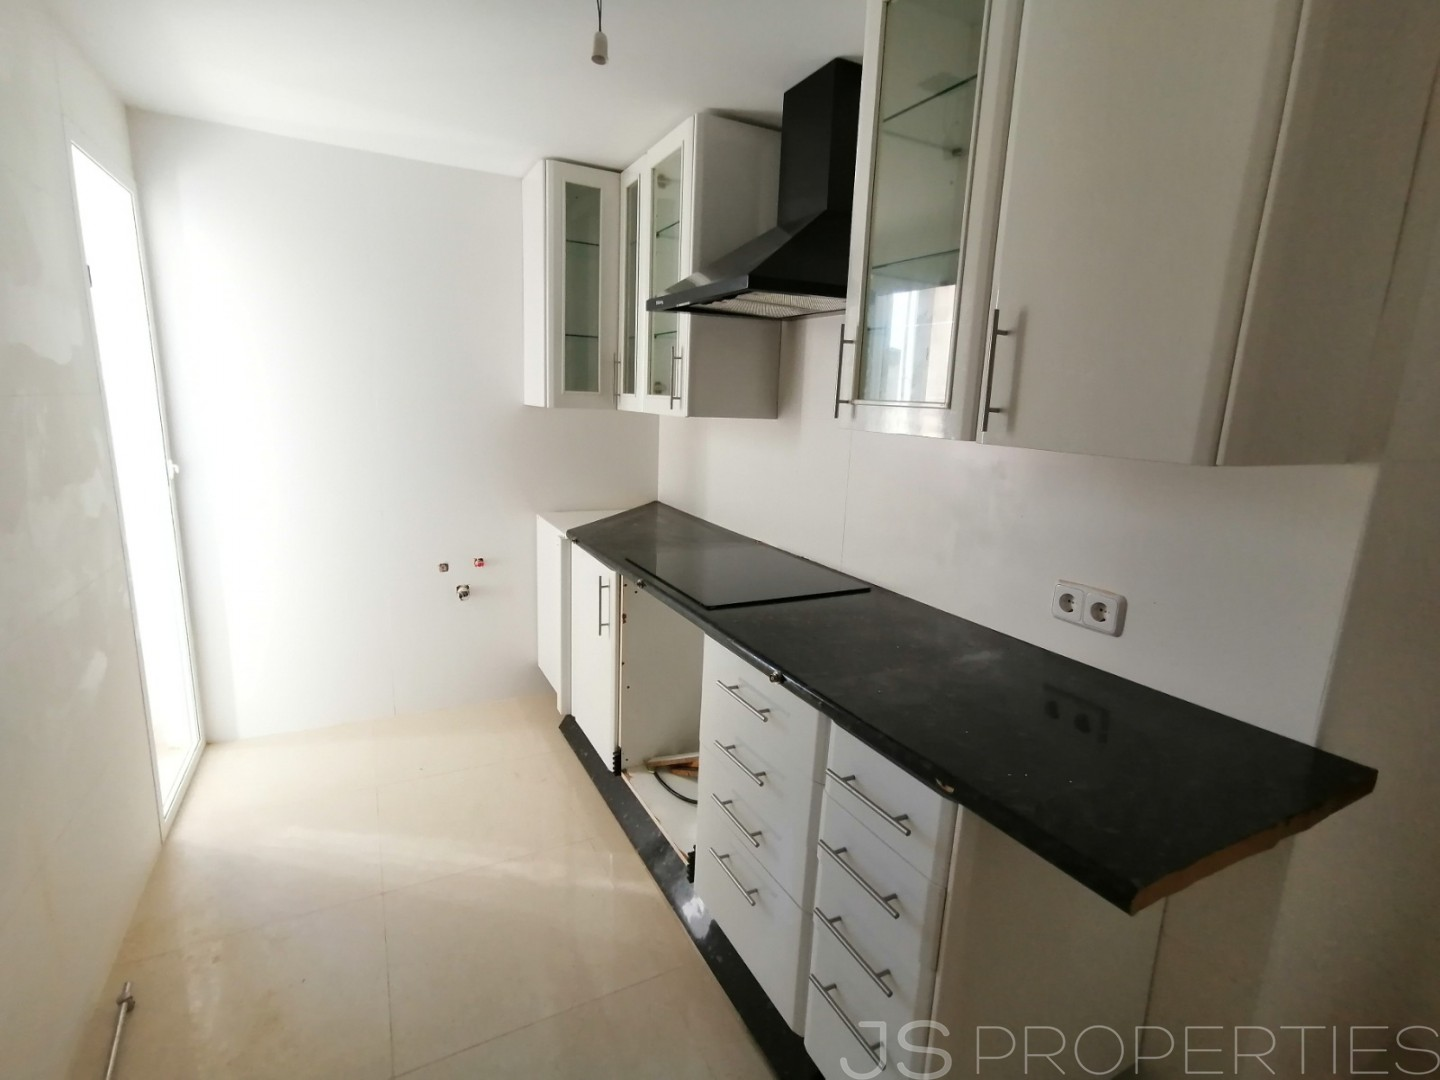 REFURBISHED APARTMENT IN THE CENTER OF INCA